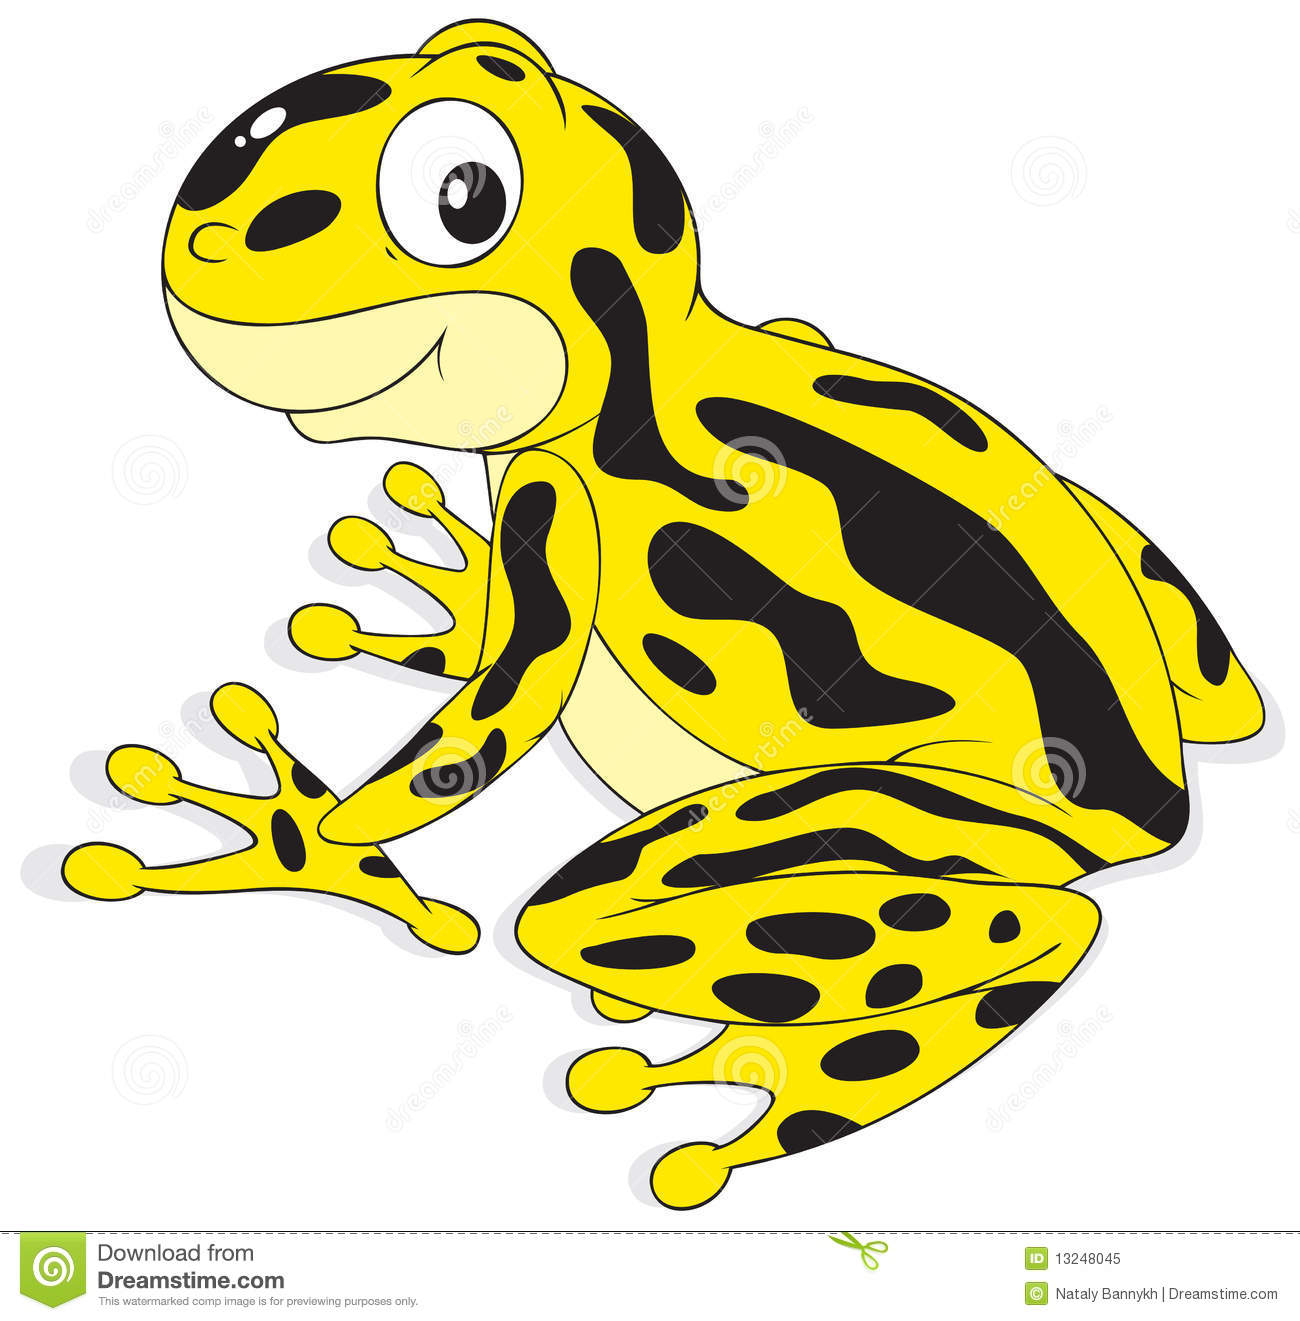 Poison dart frog clip art - photo#9